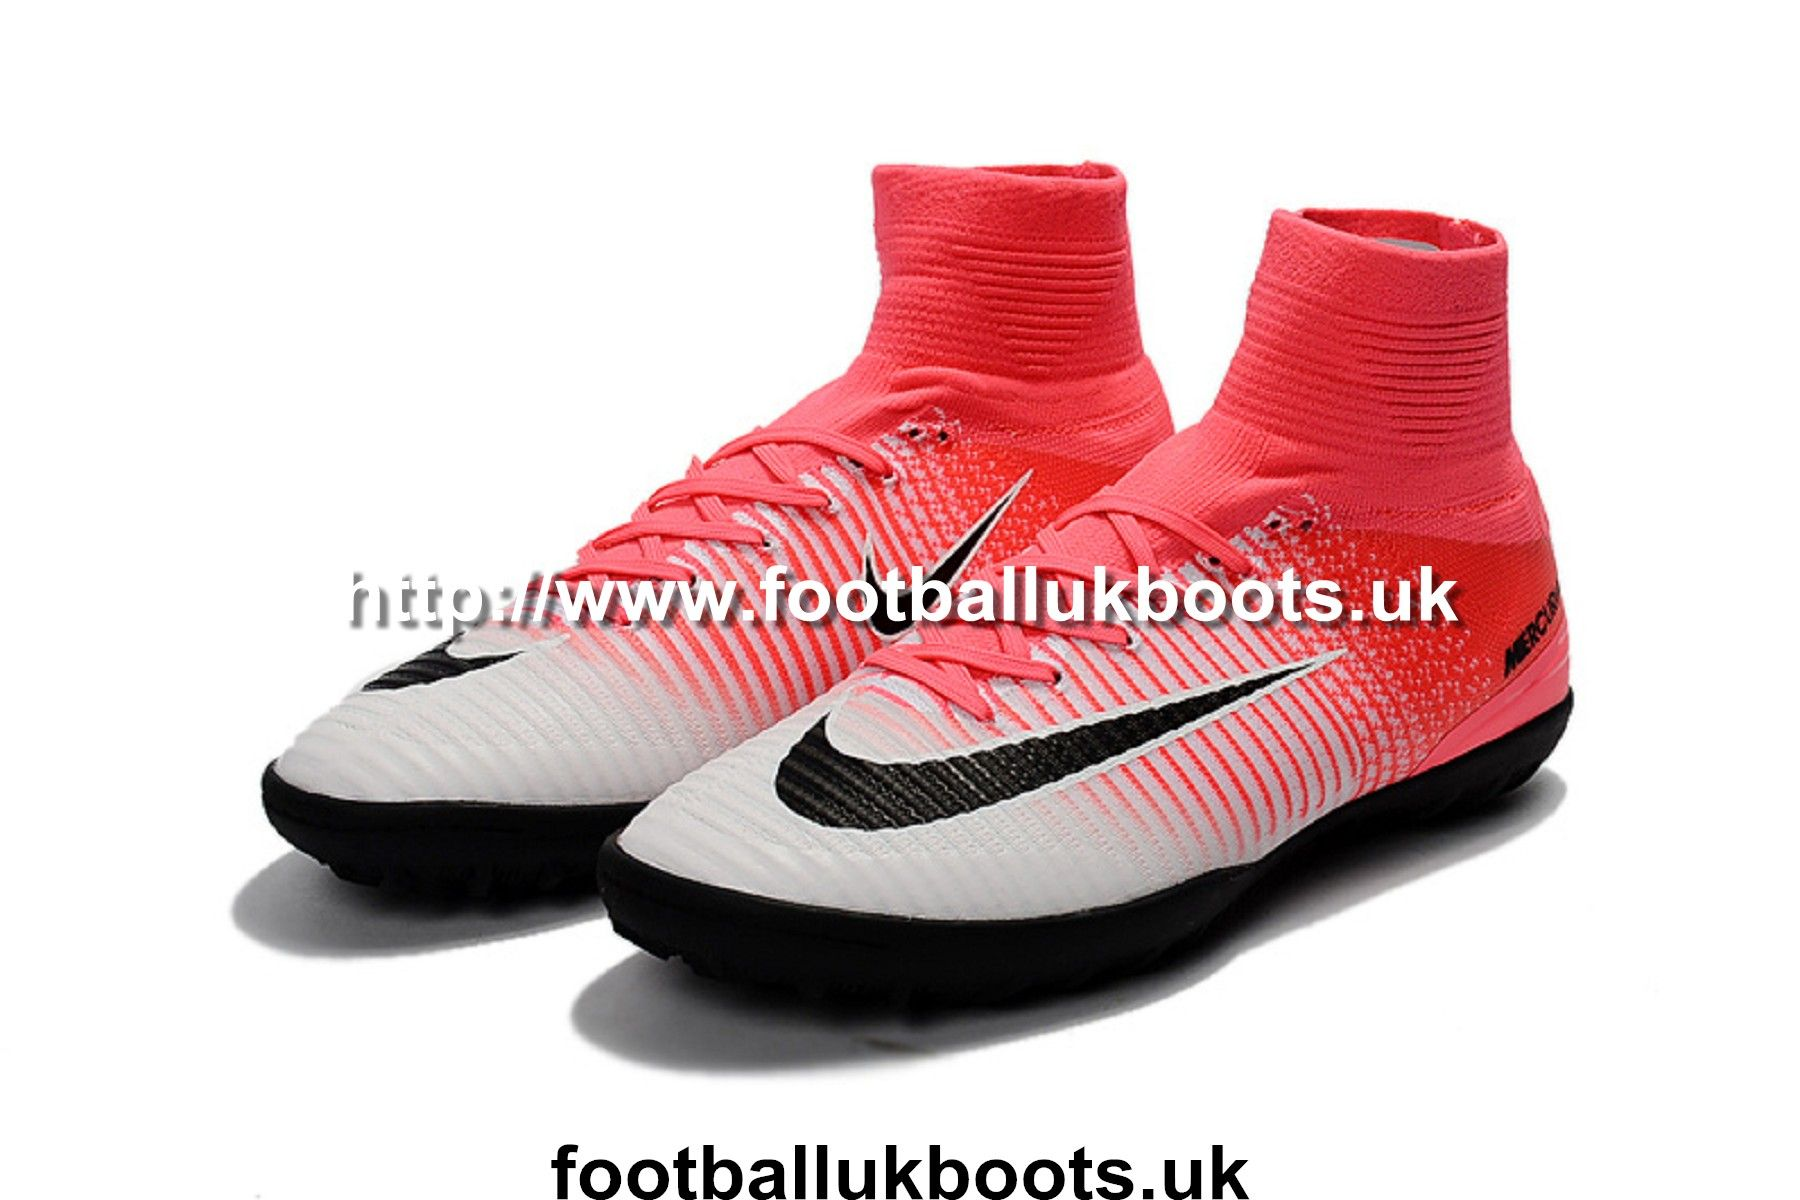 0589fb9658cc5 Luxury Kids Football Boots Nike MercurialX Proximo II TF - Race  Pink Black White